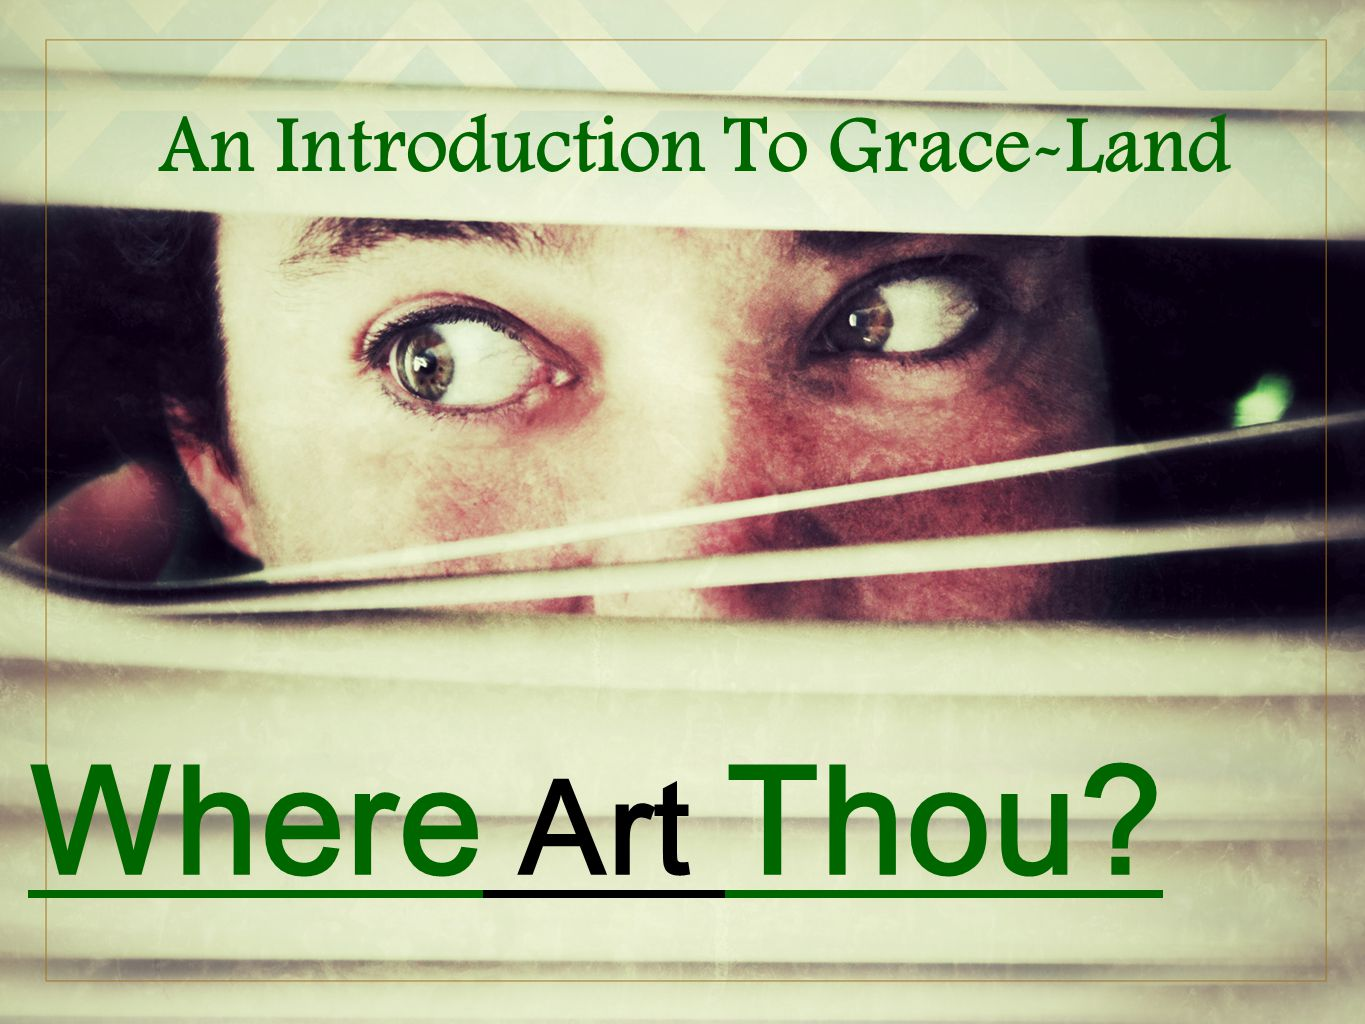 Where Art Thou An Introduction To Grace-Land